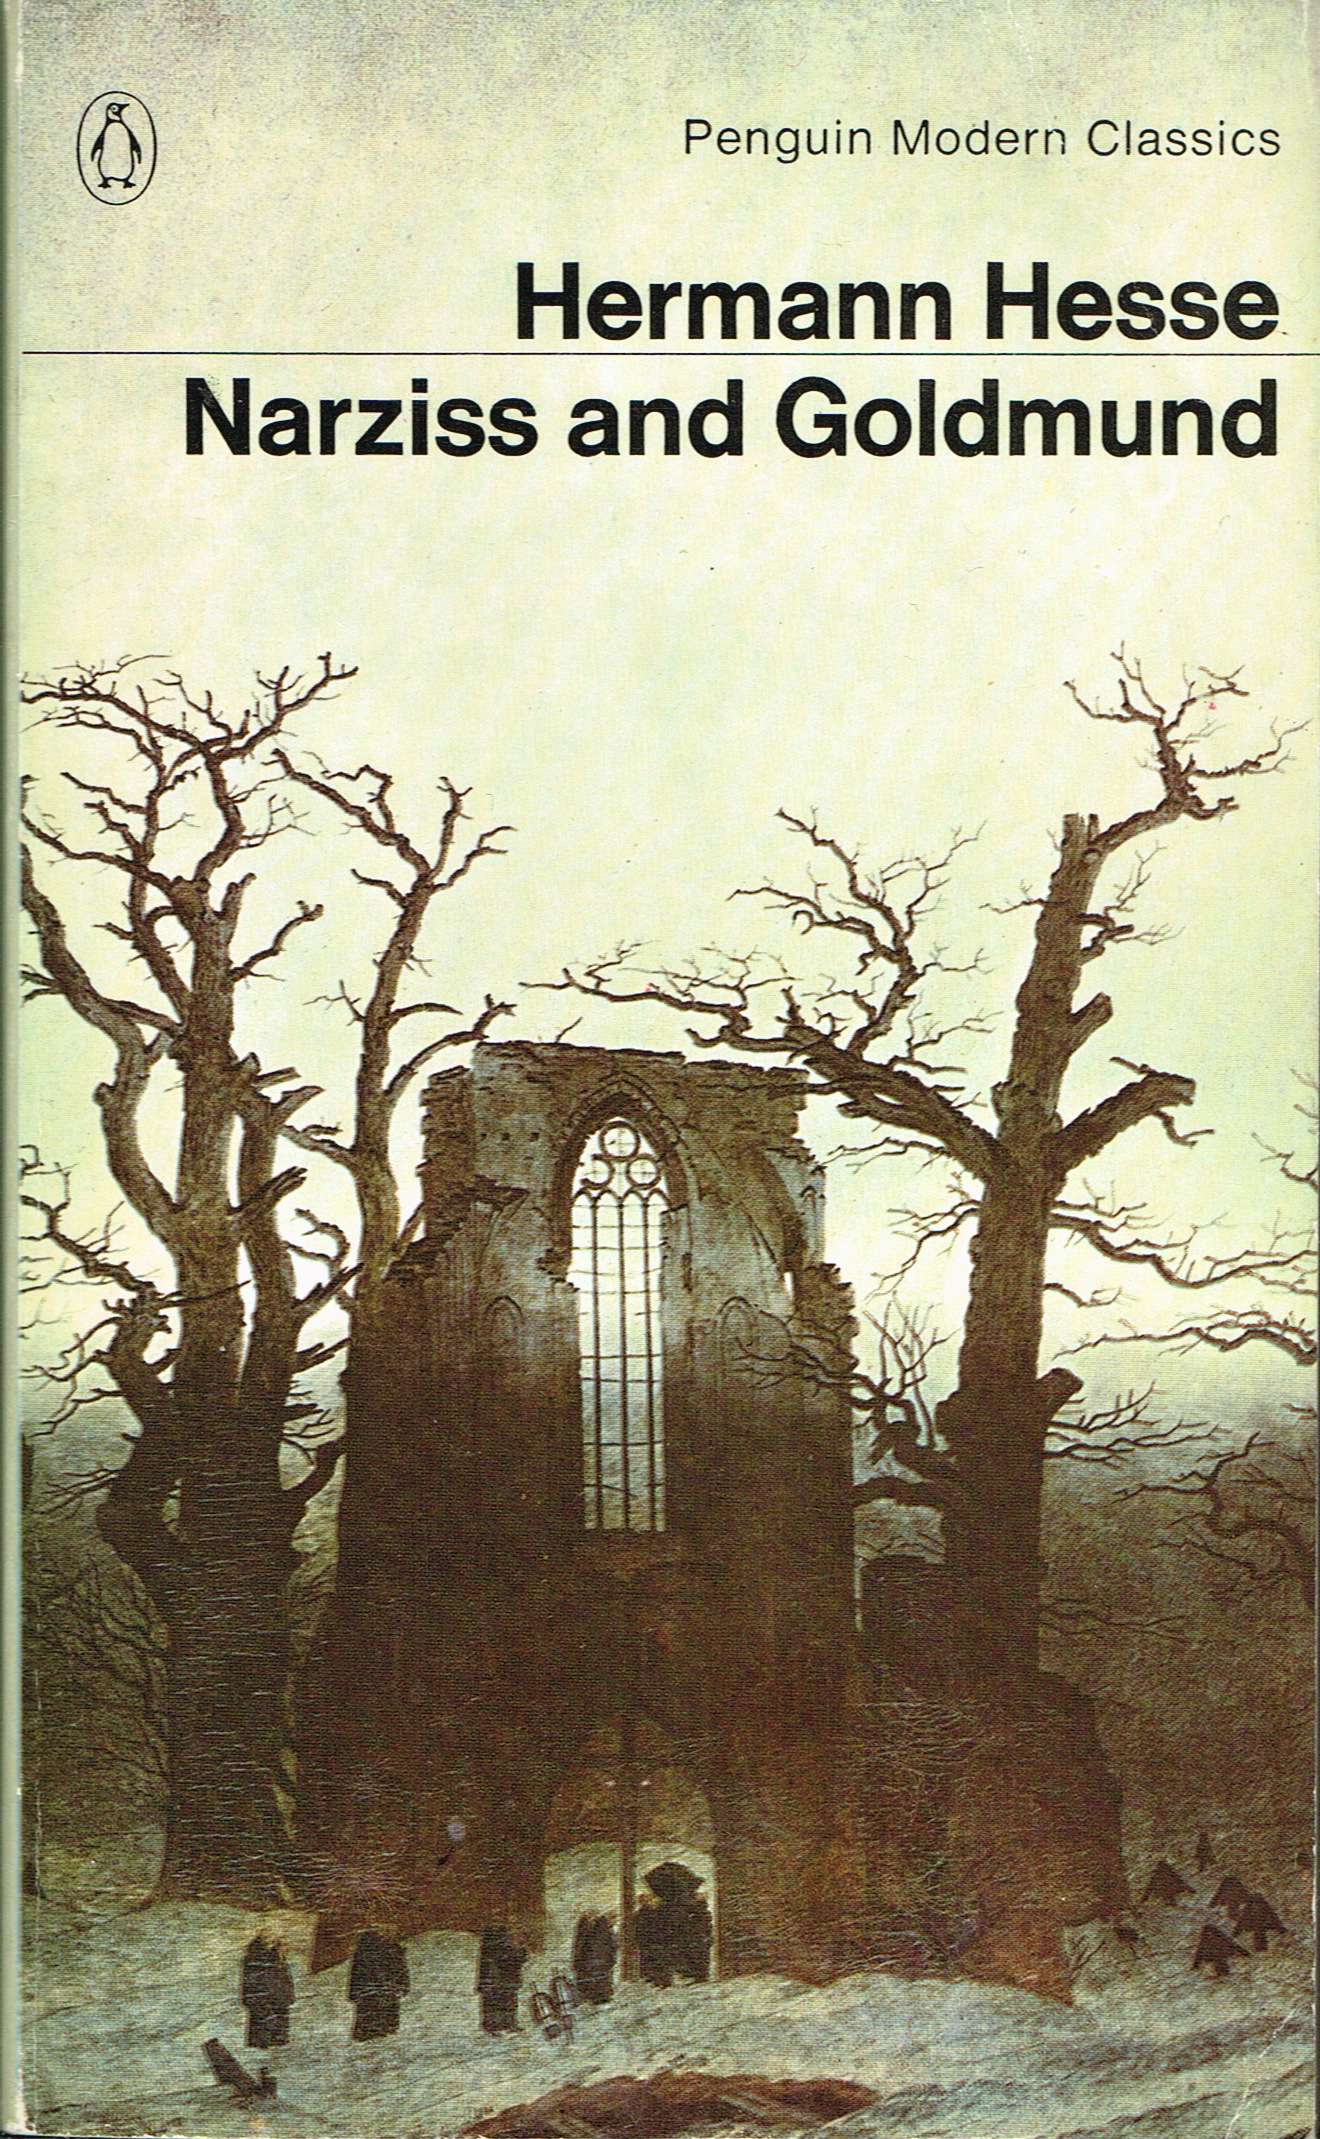 an analysis of love in narcissus and goldmund by hermann hesse